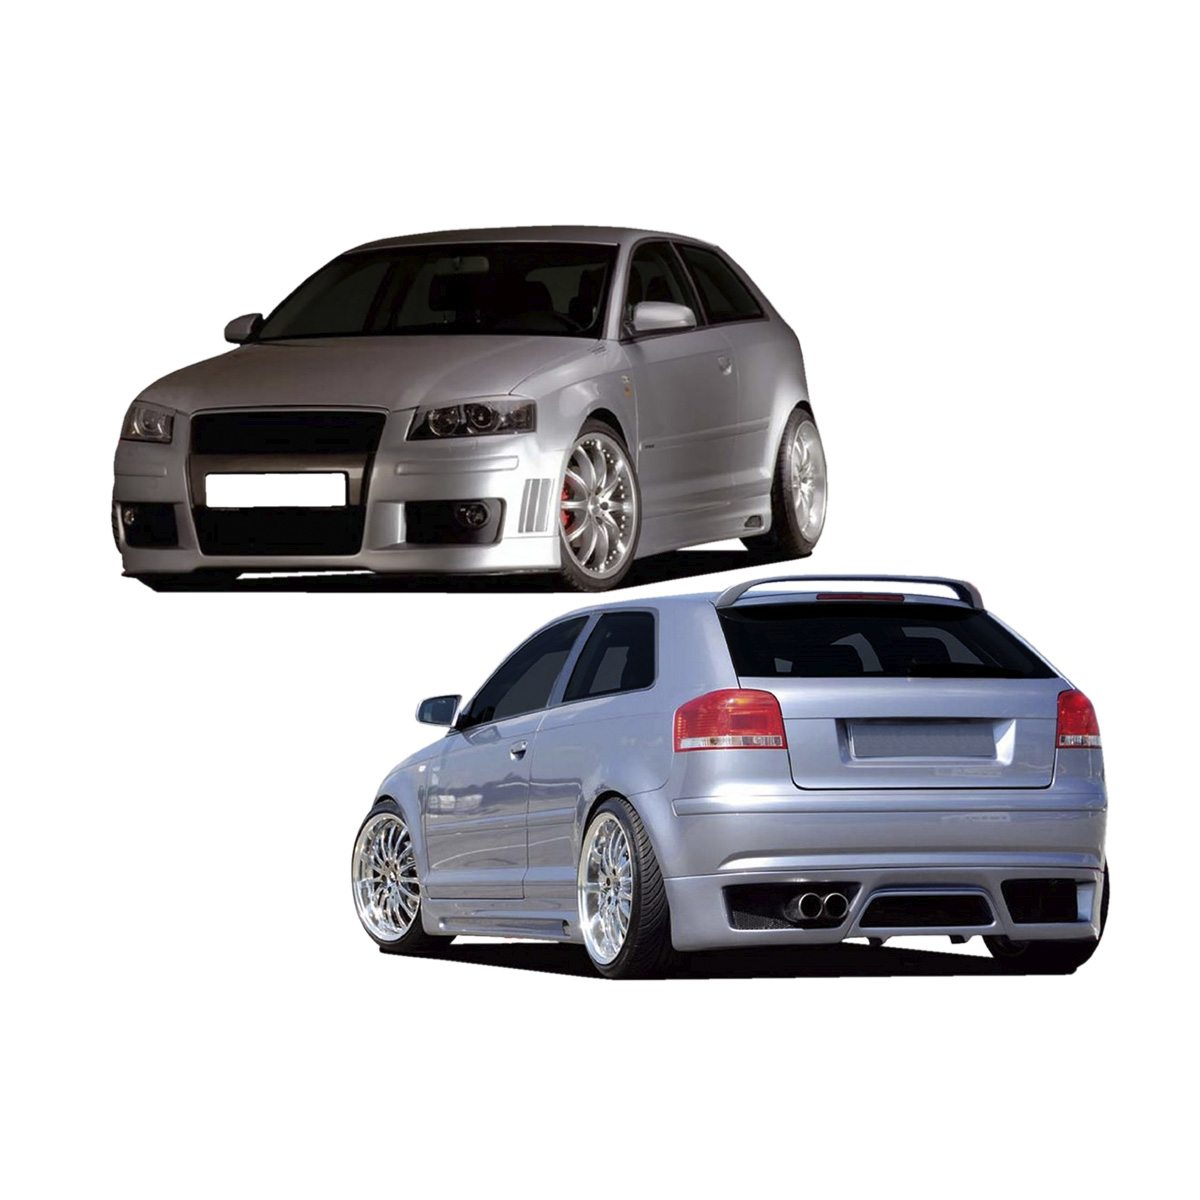 Audi-A3-2003-Race-Kit-QTU182